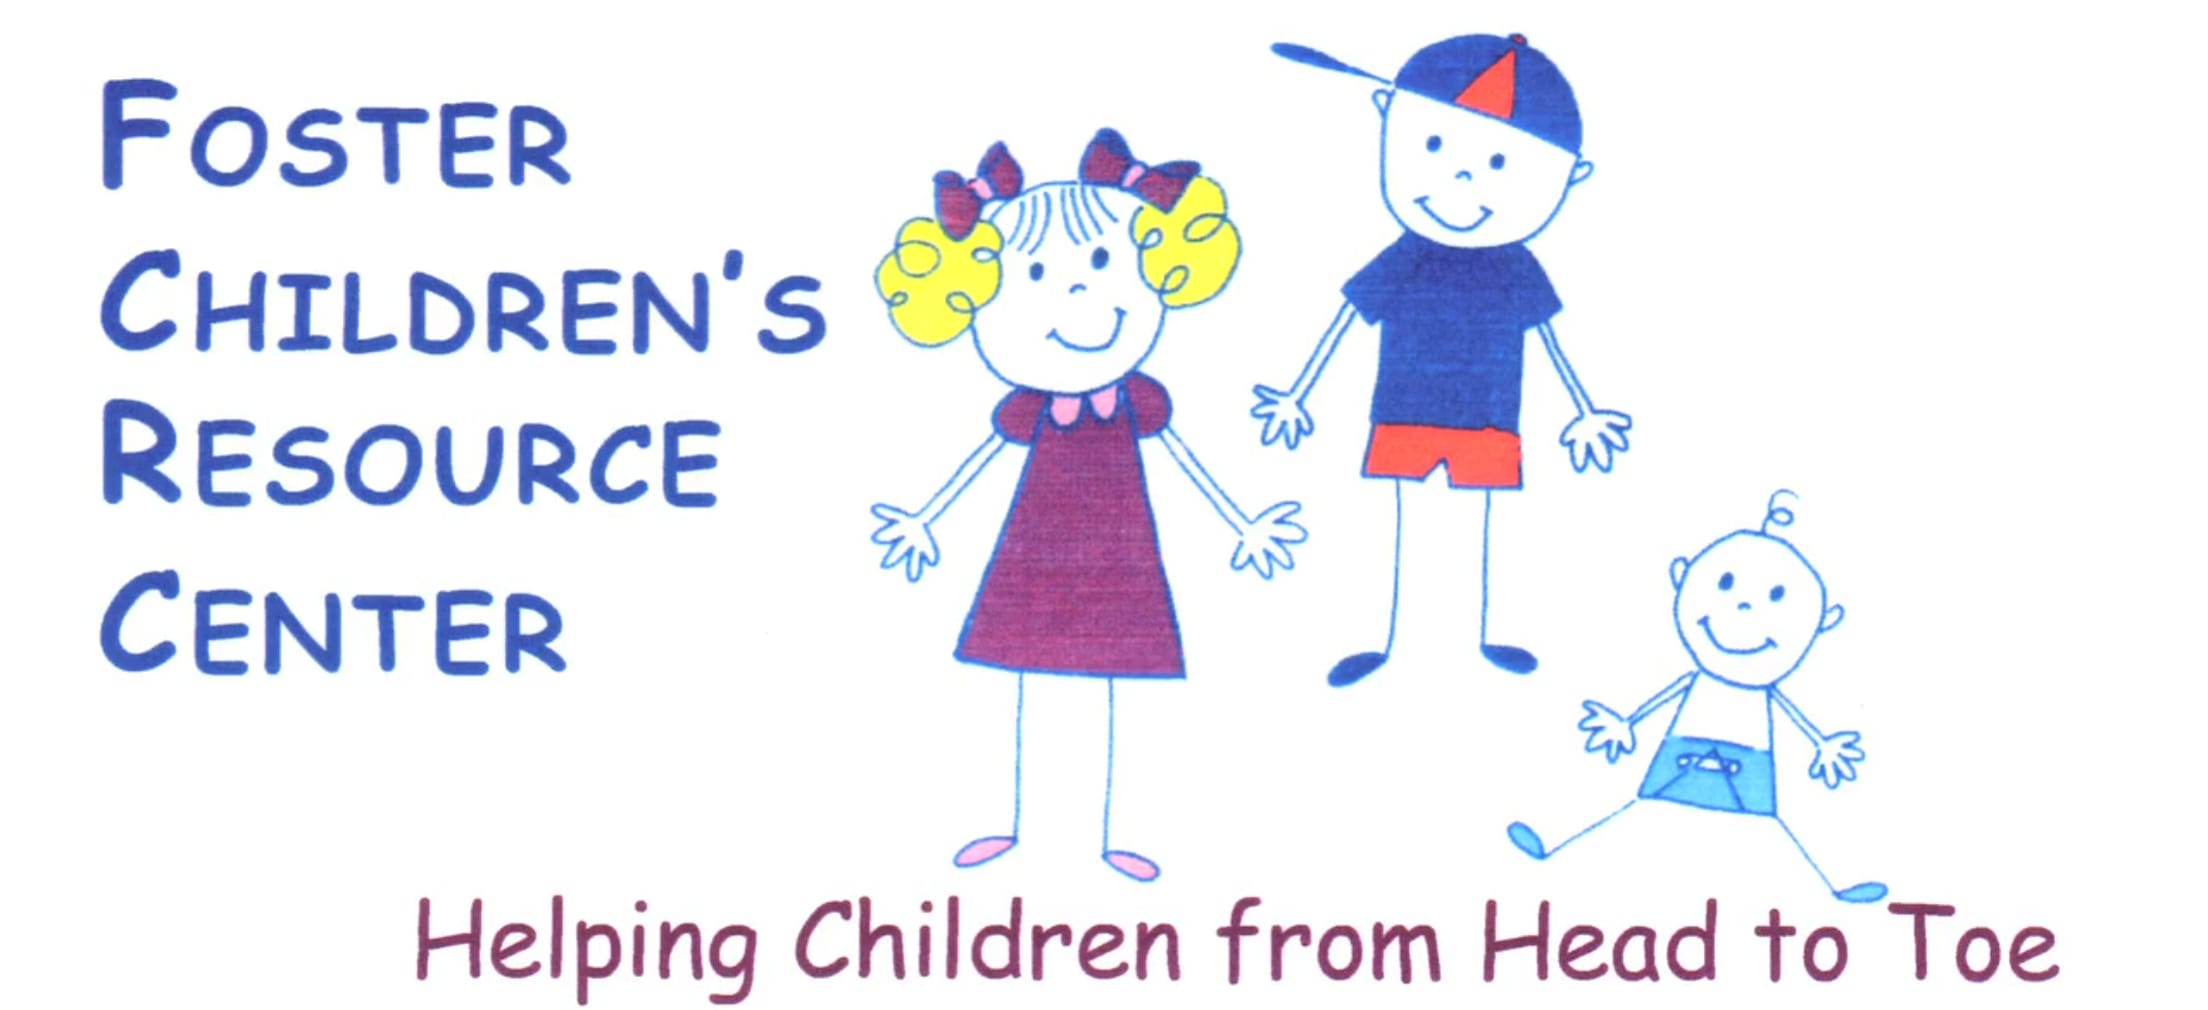 Foster Children's Resource Center Logo